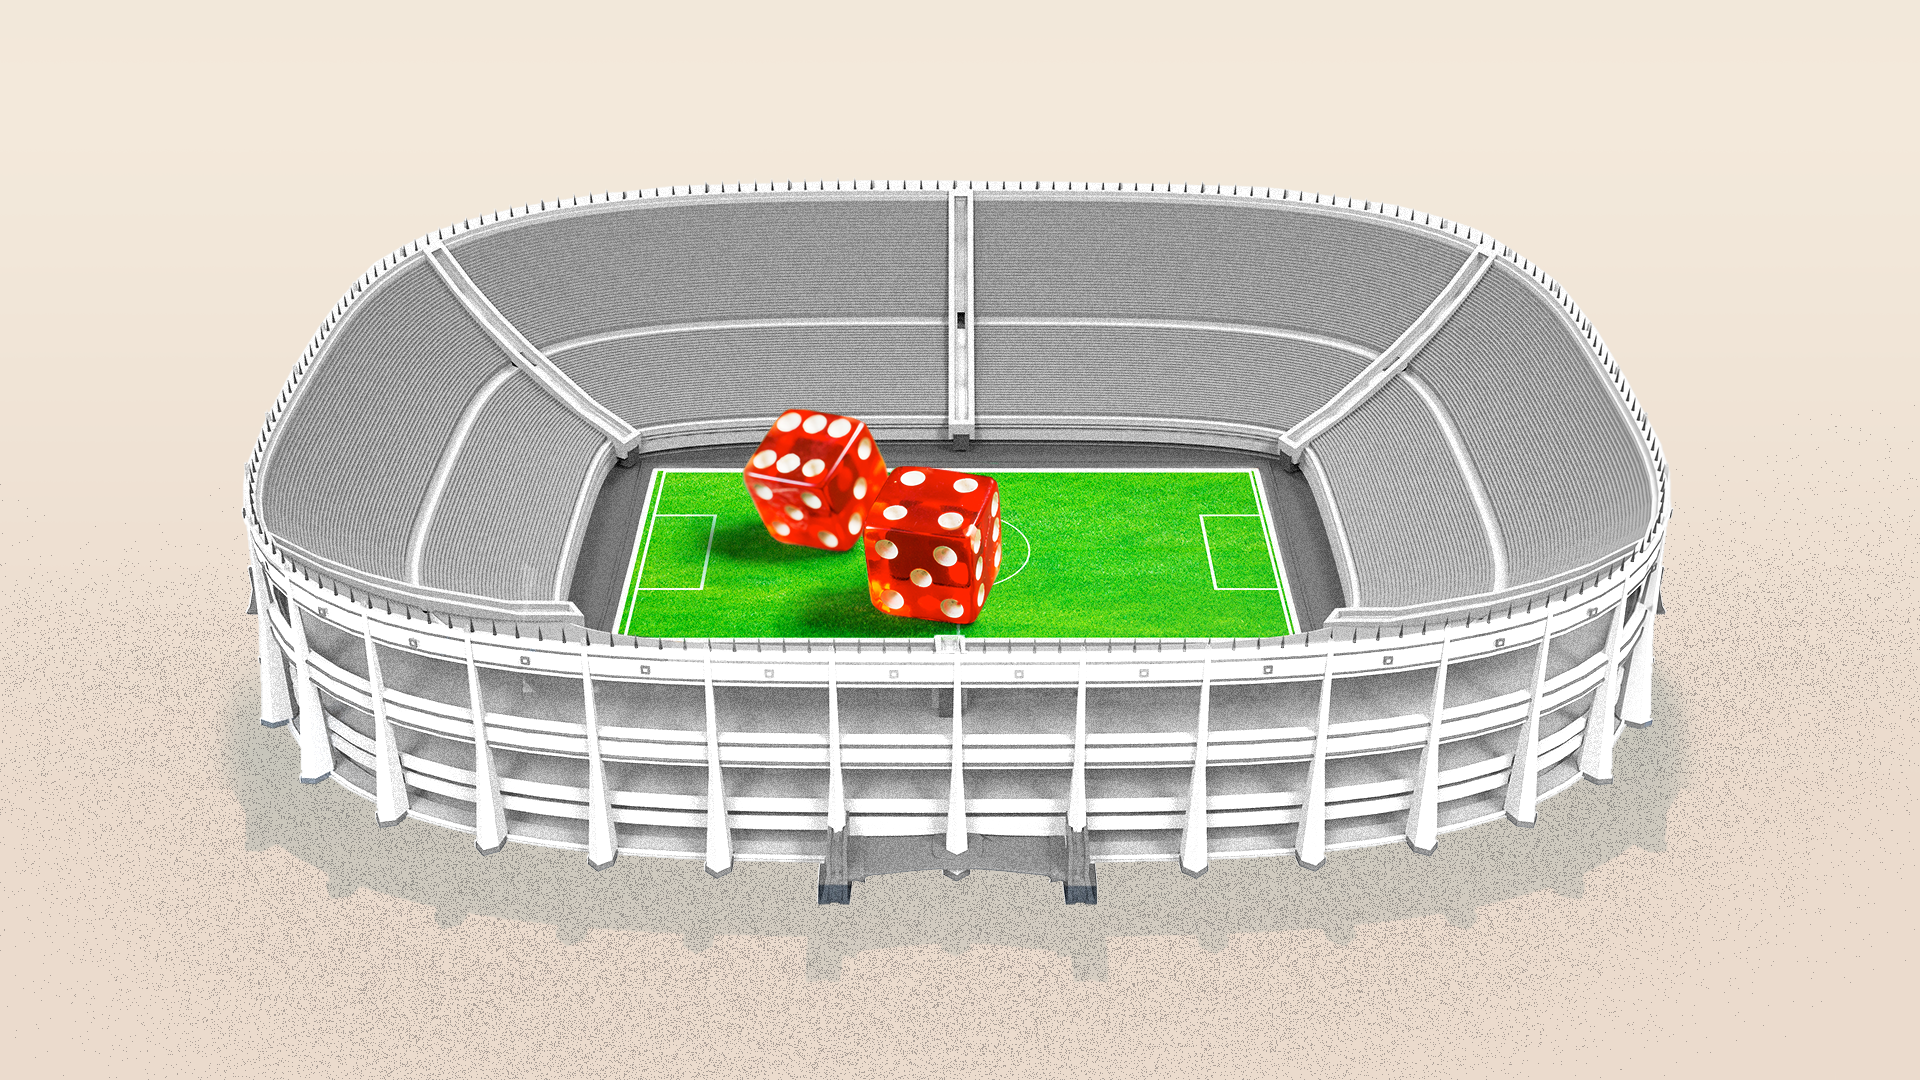 A stadium with dice in it